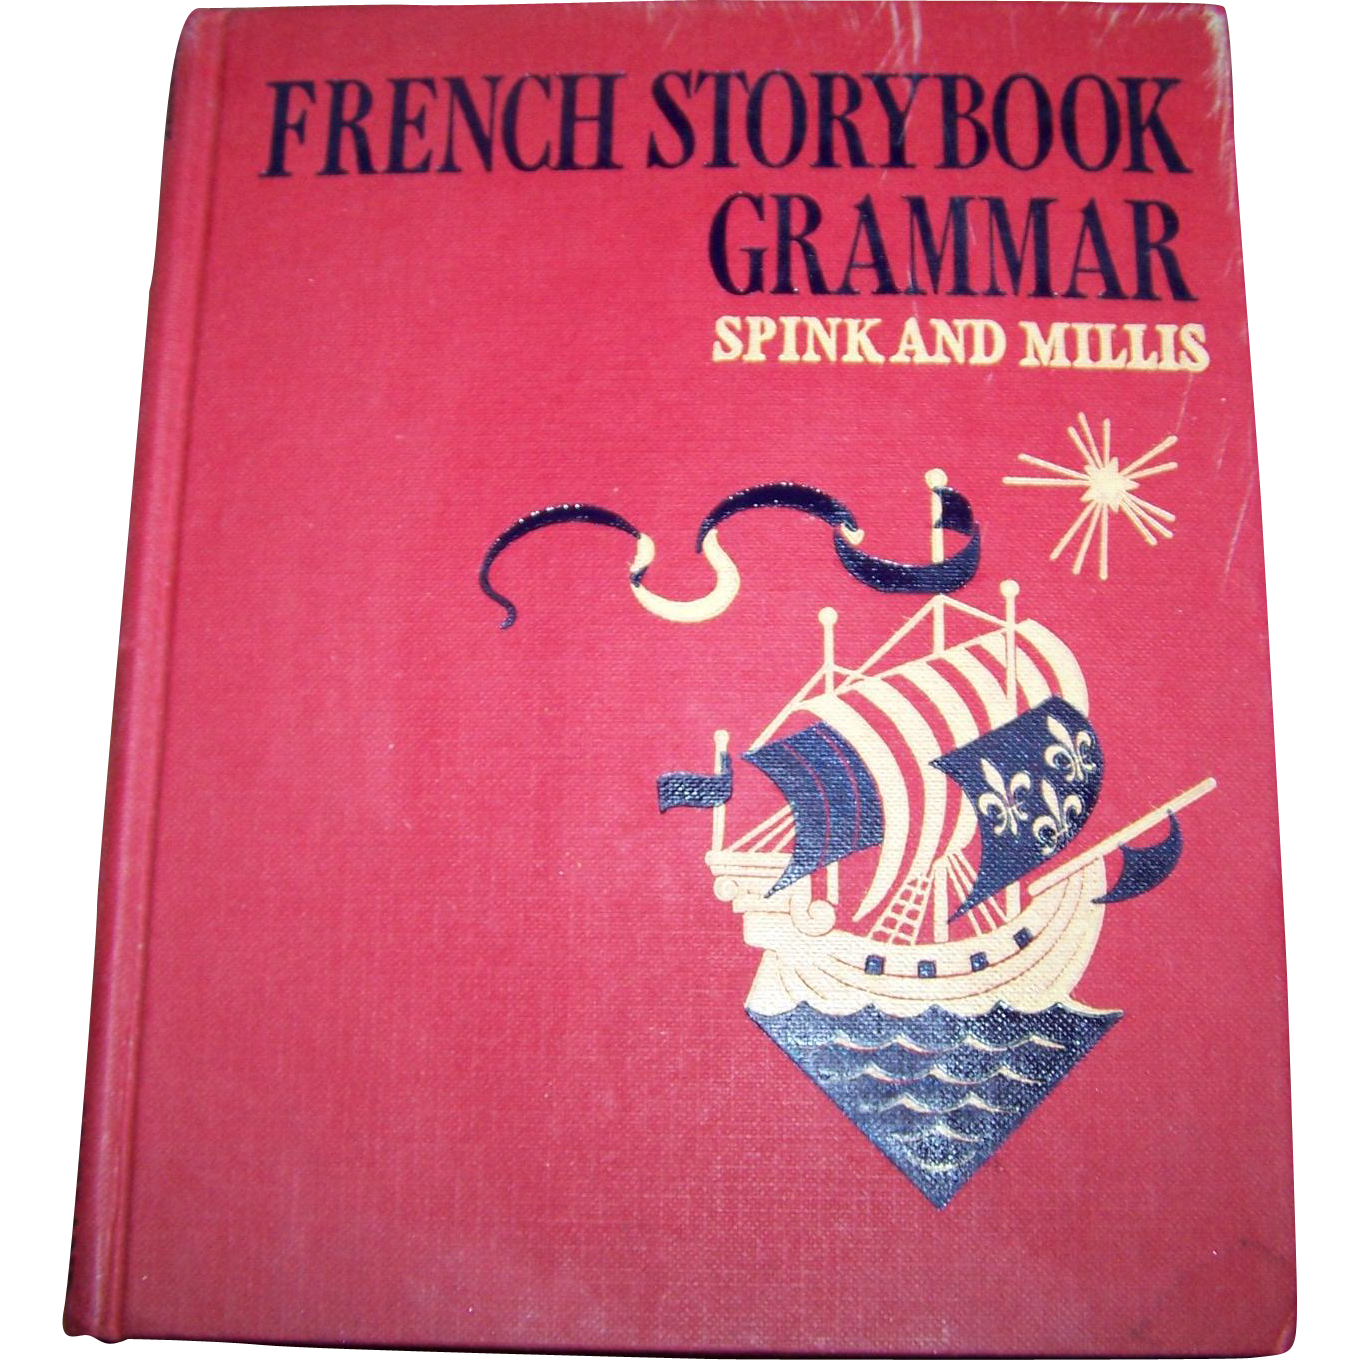 French StoryBook Grammar Hard Cover Children's Book by Spink and Millis